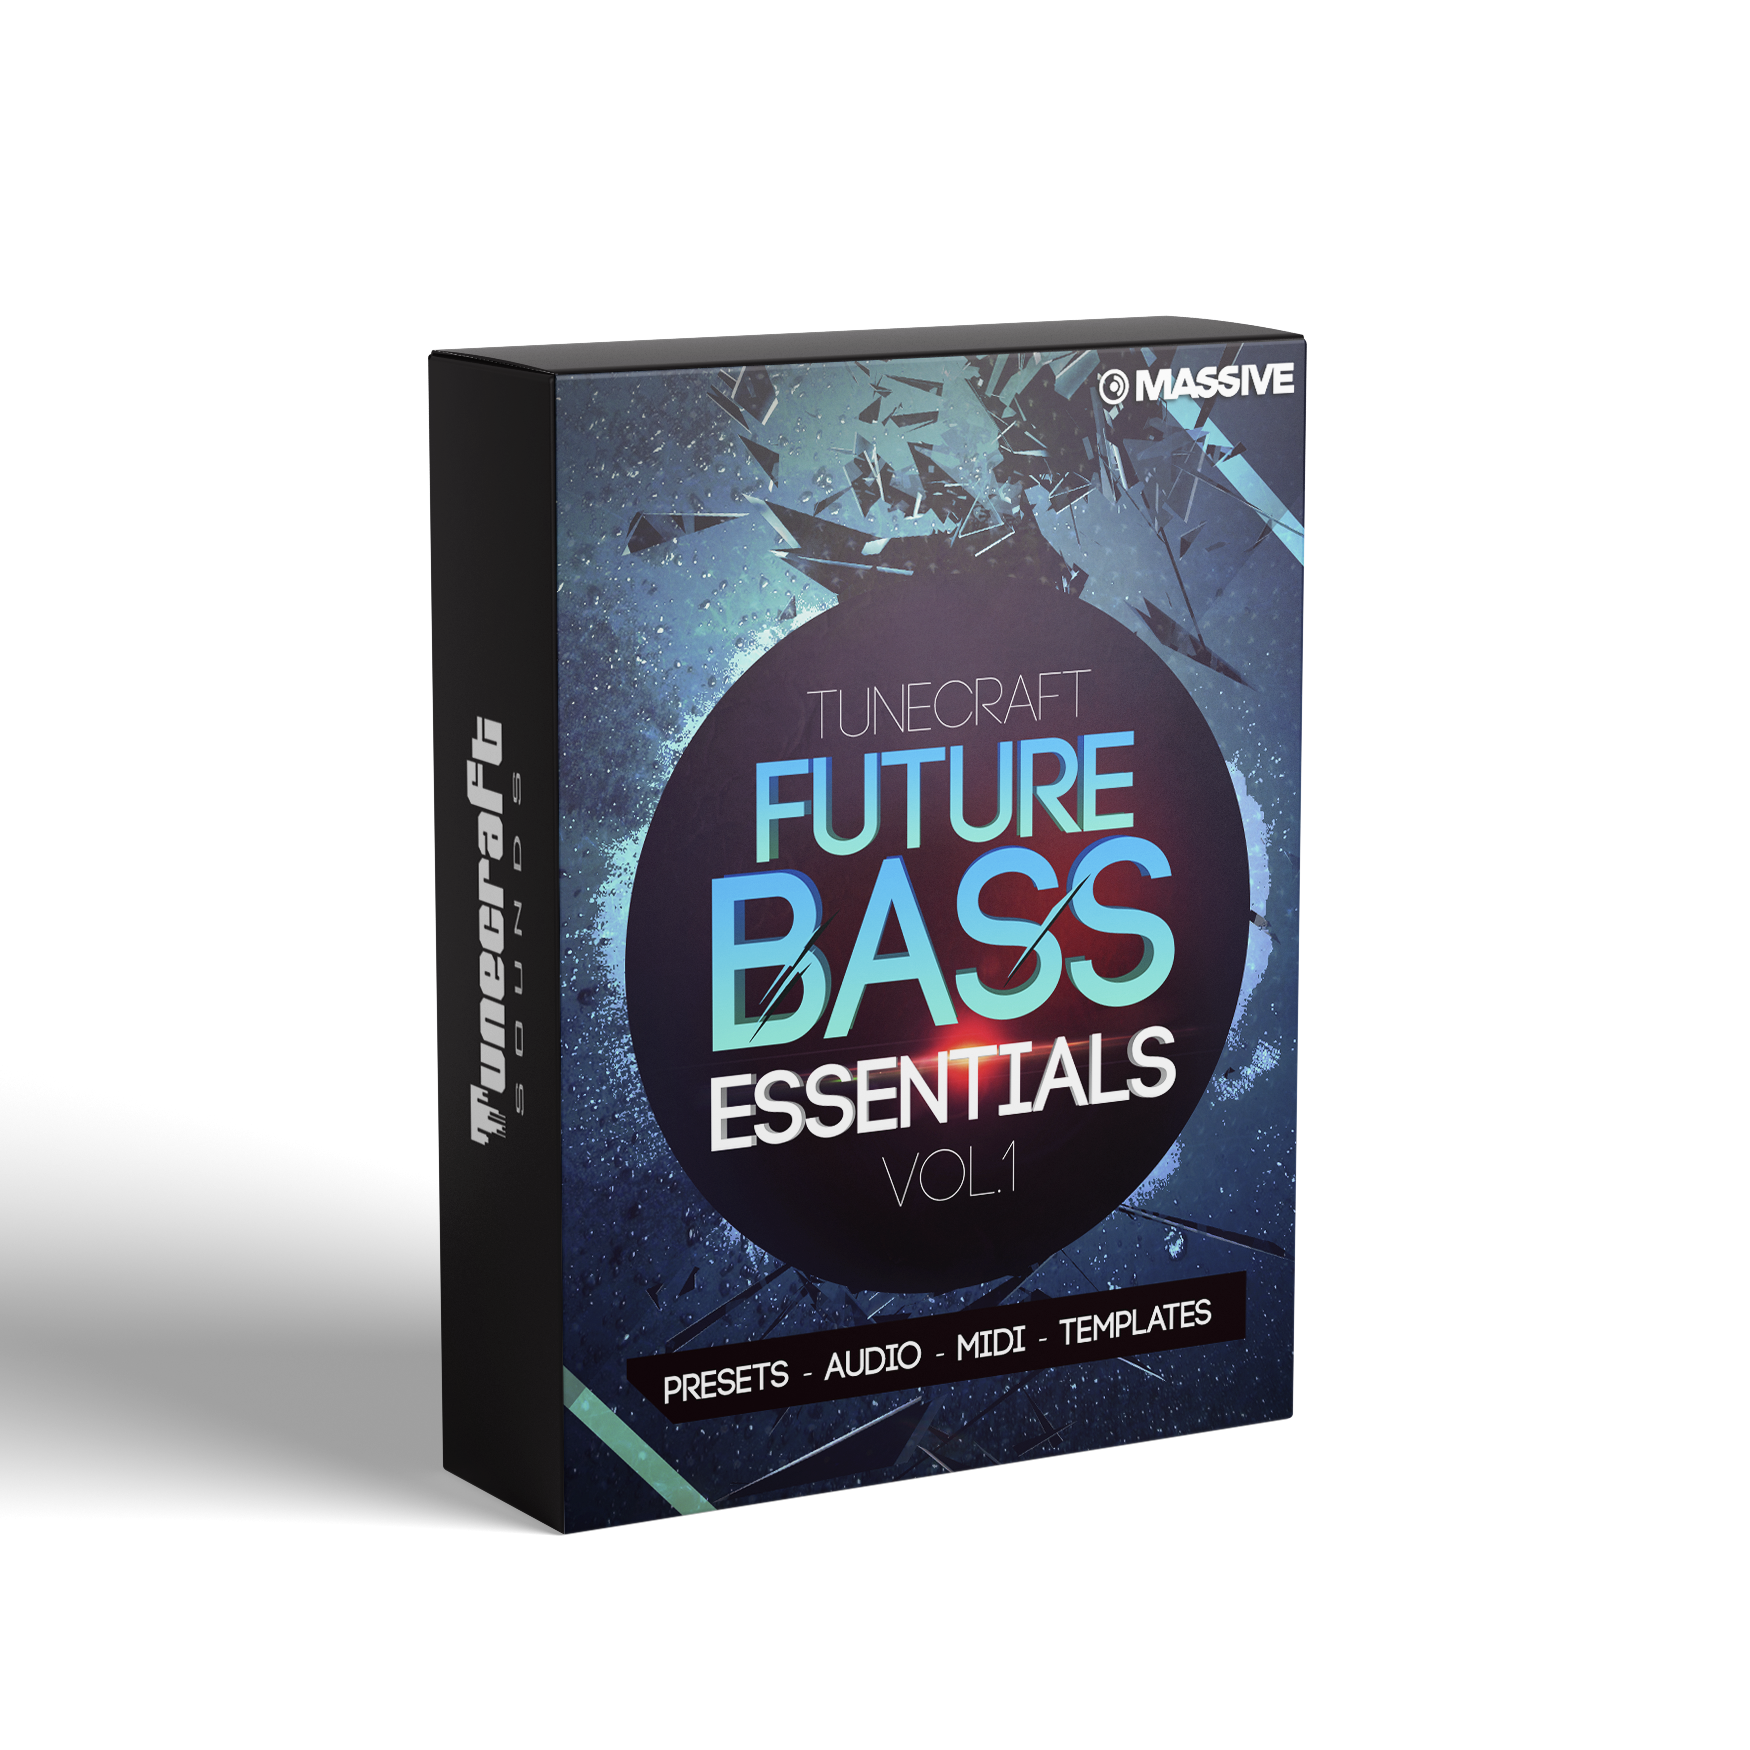 Future-Bass-Essentials-v1-3D-box-trans